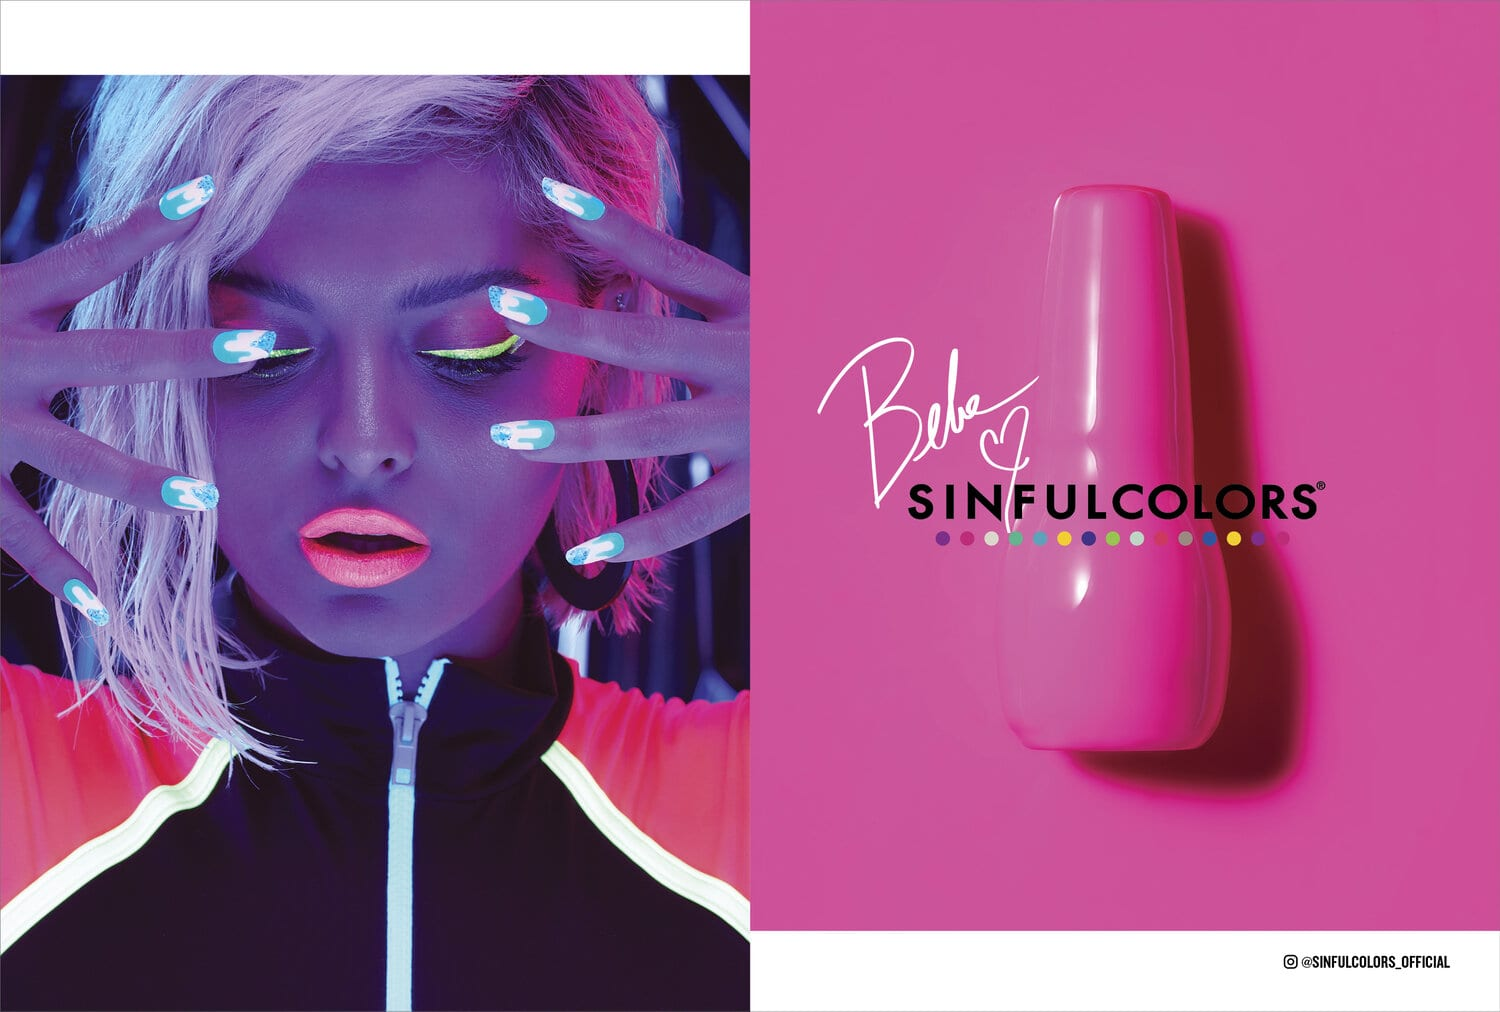 SINFULCOLORS PT2